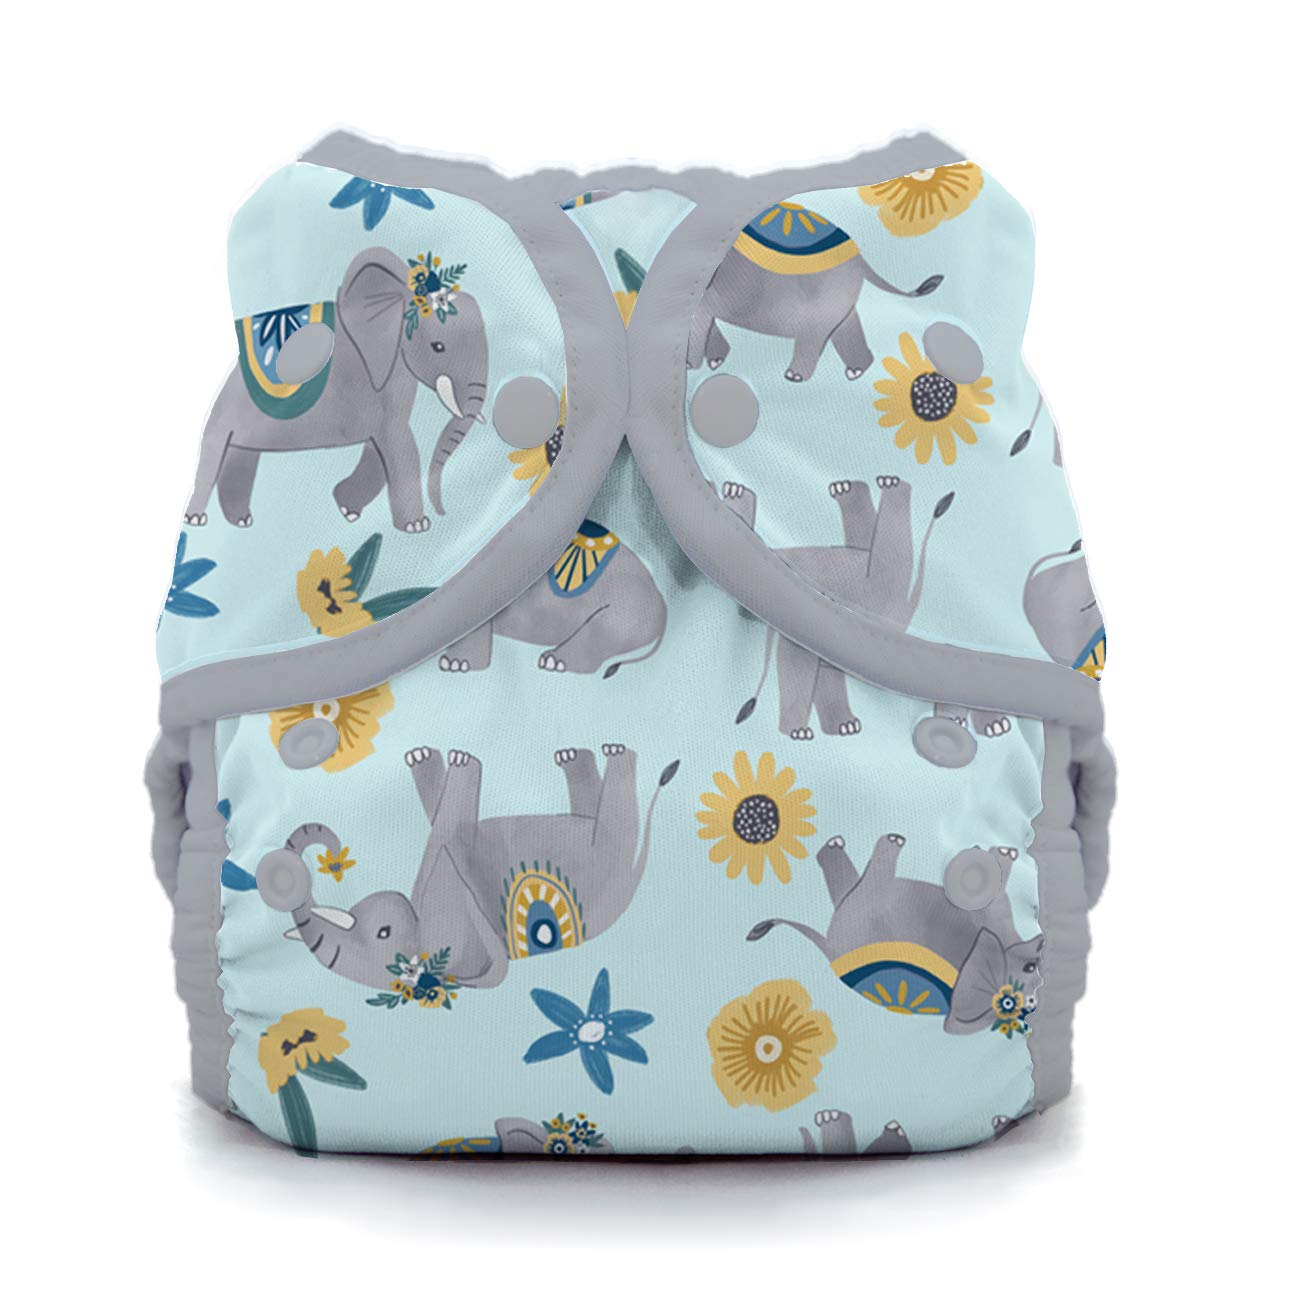 Thirsties Duo Wrap Cloth Diaper Cover Snap Closure Happy Camper Size Two 18-40 lbs